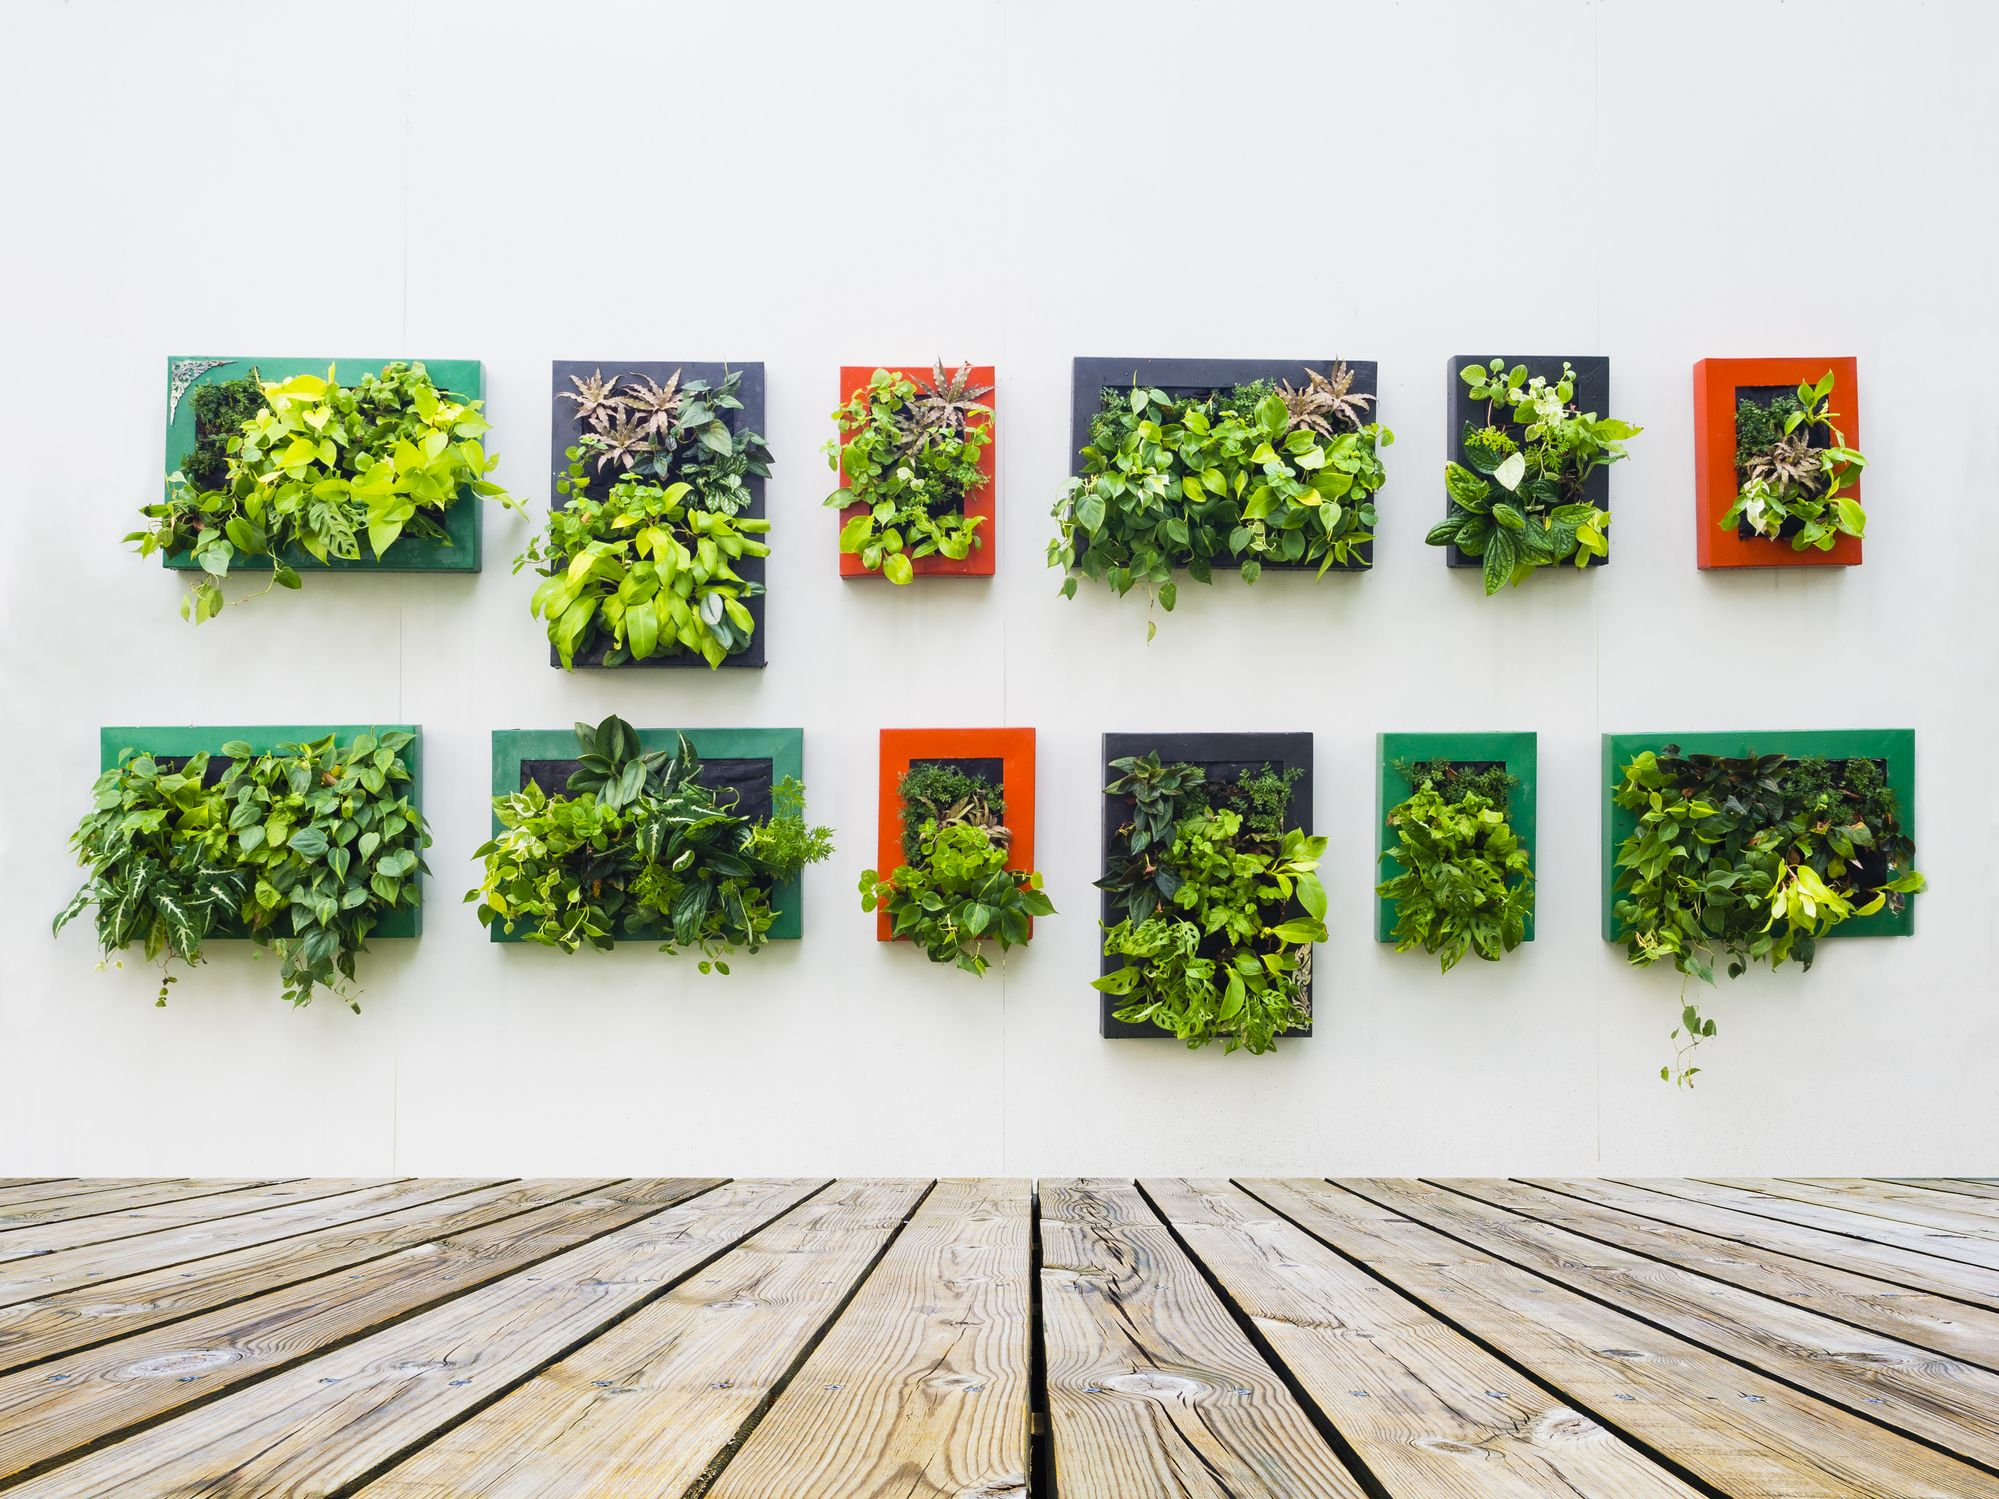 35 Creative Ways to Plant a Vertical Garden - How to Make a ...